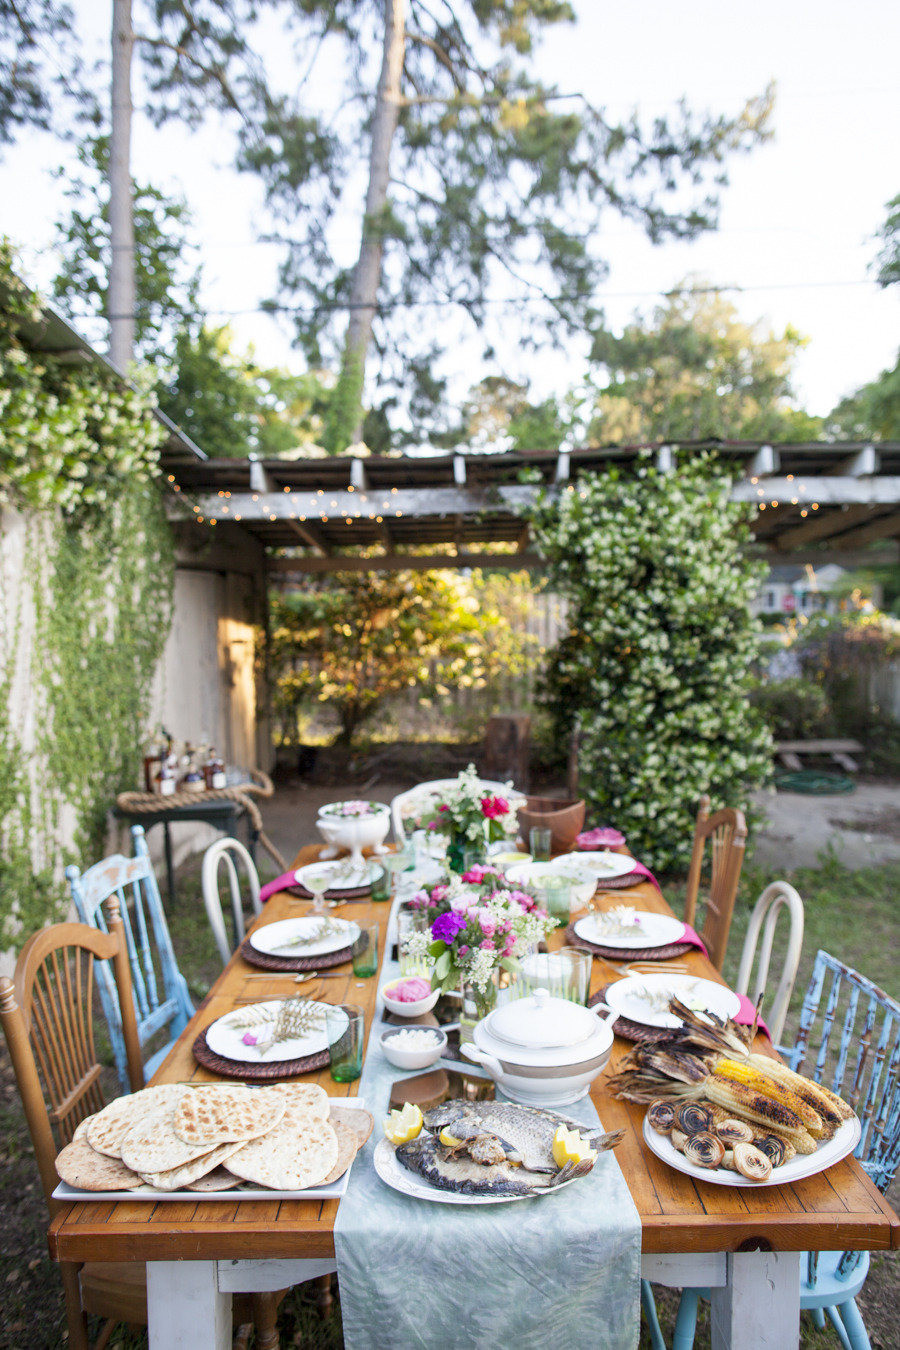 Backyard Party Design Ideas  50 Outdoor Party Ideas You Should Try Out This Summer